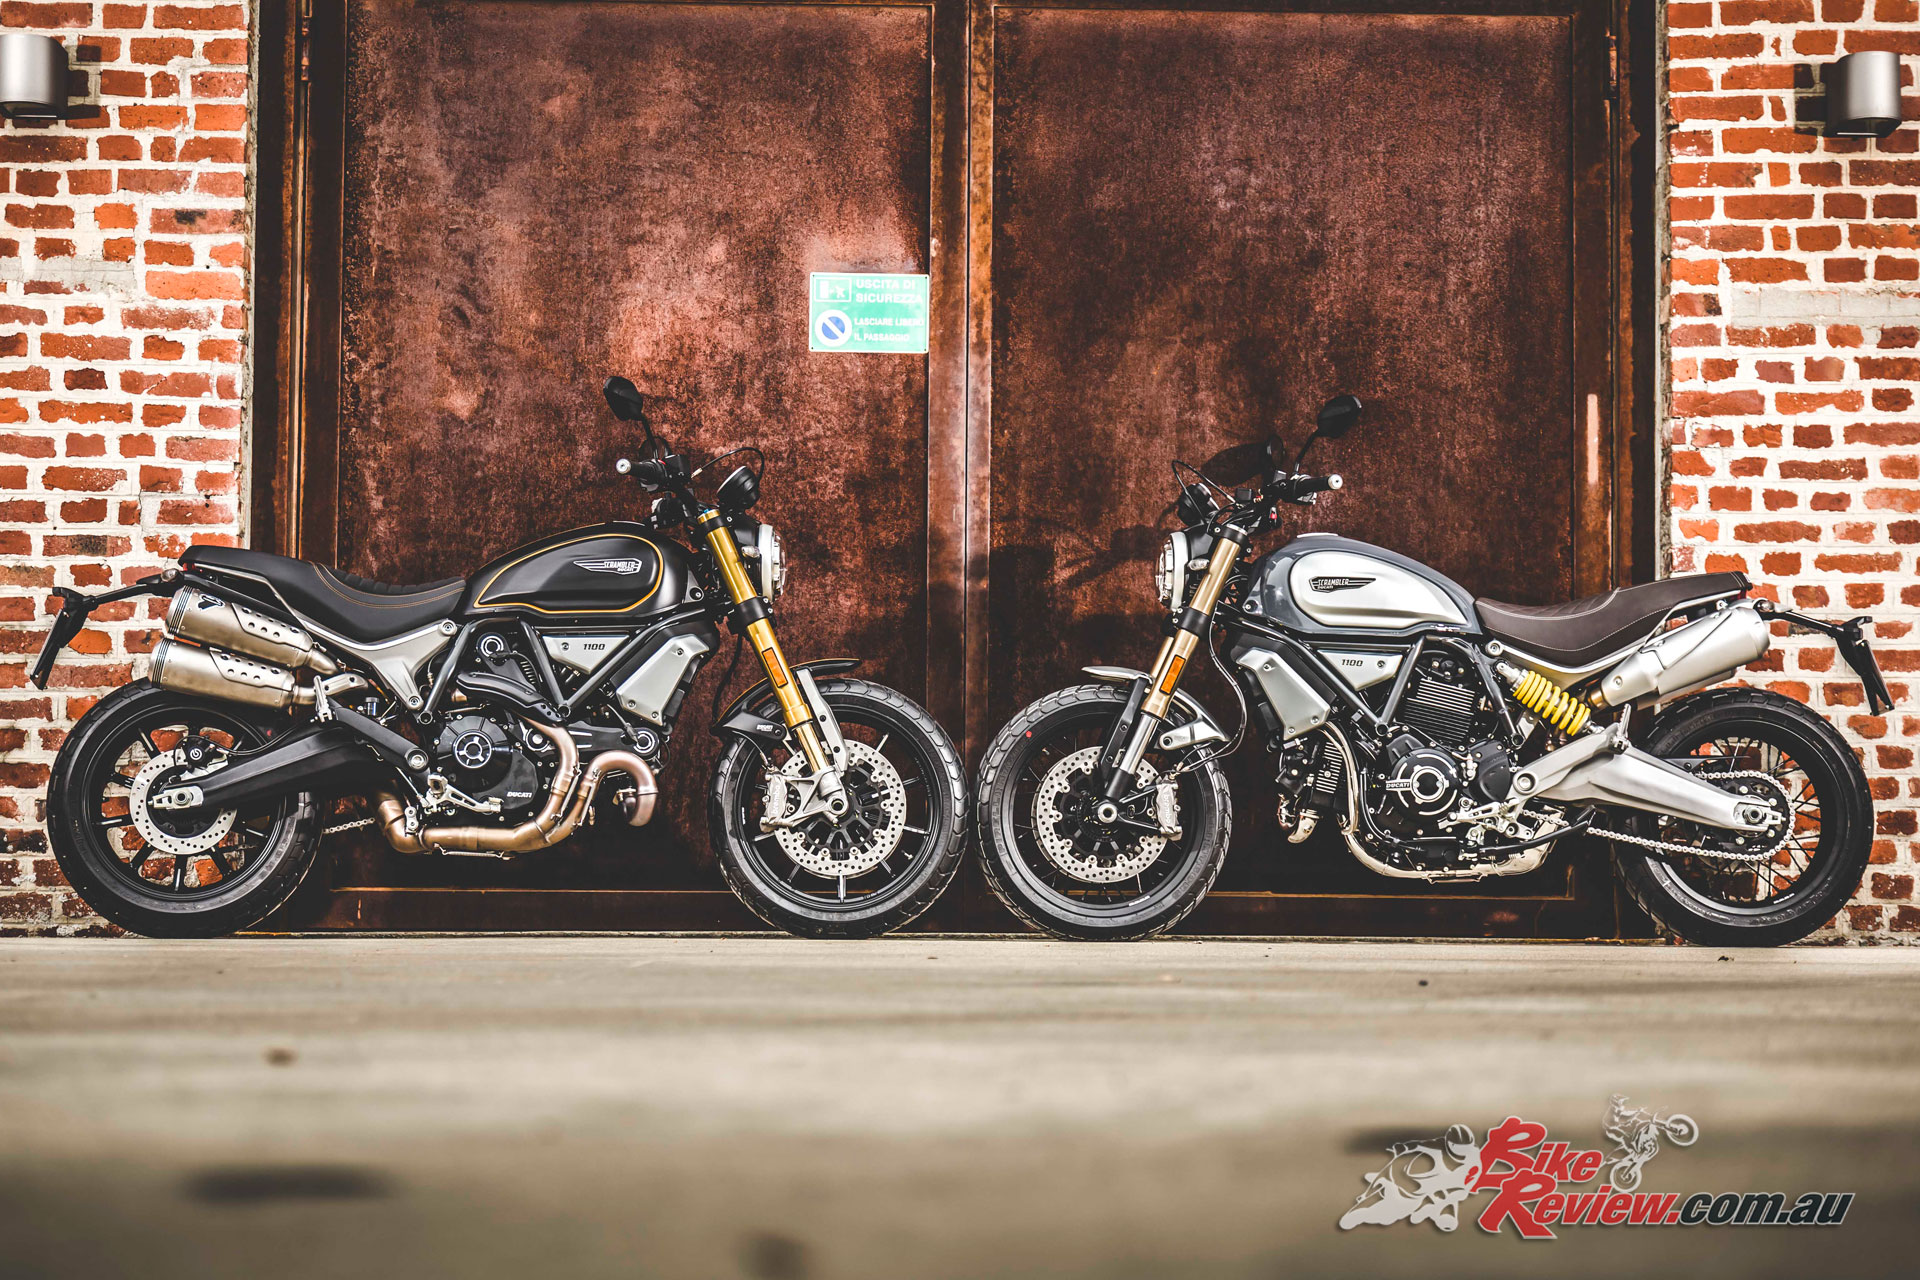 The first Ducati Scrambler 1100 rolls off production ...